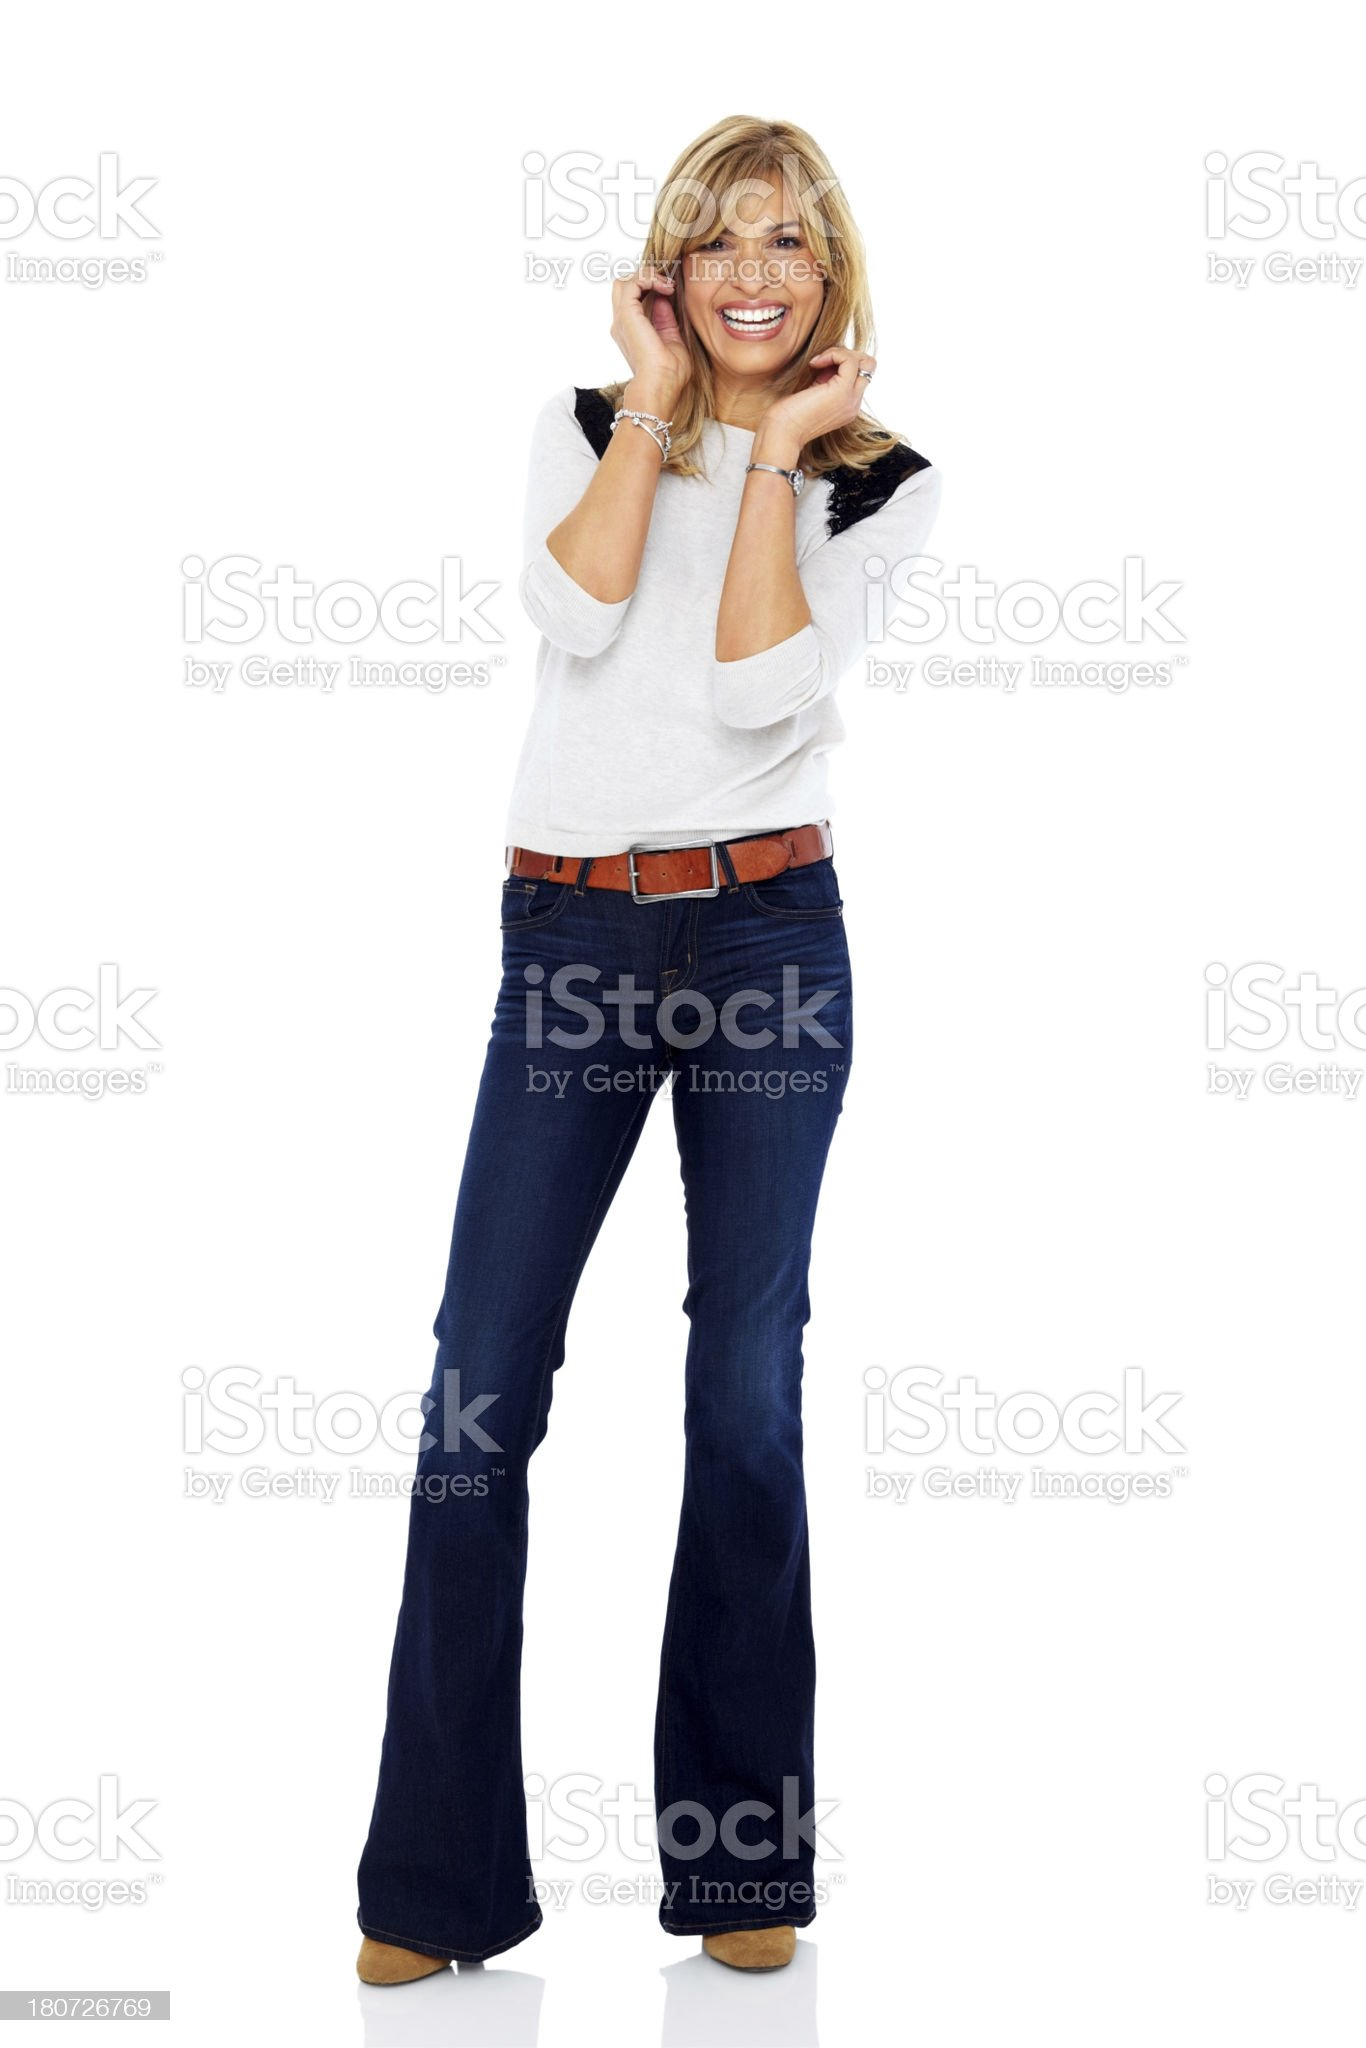 Attractive woman smiling over white background royalty-free stock photo